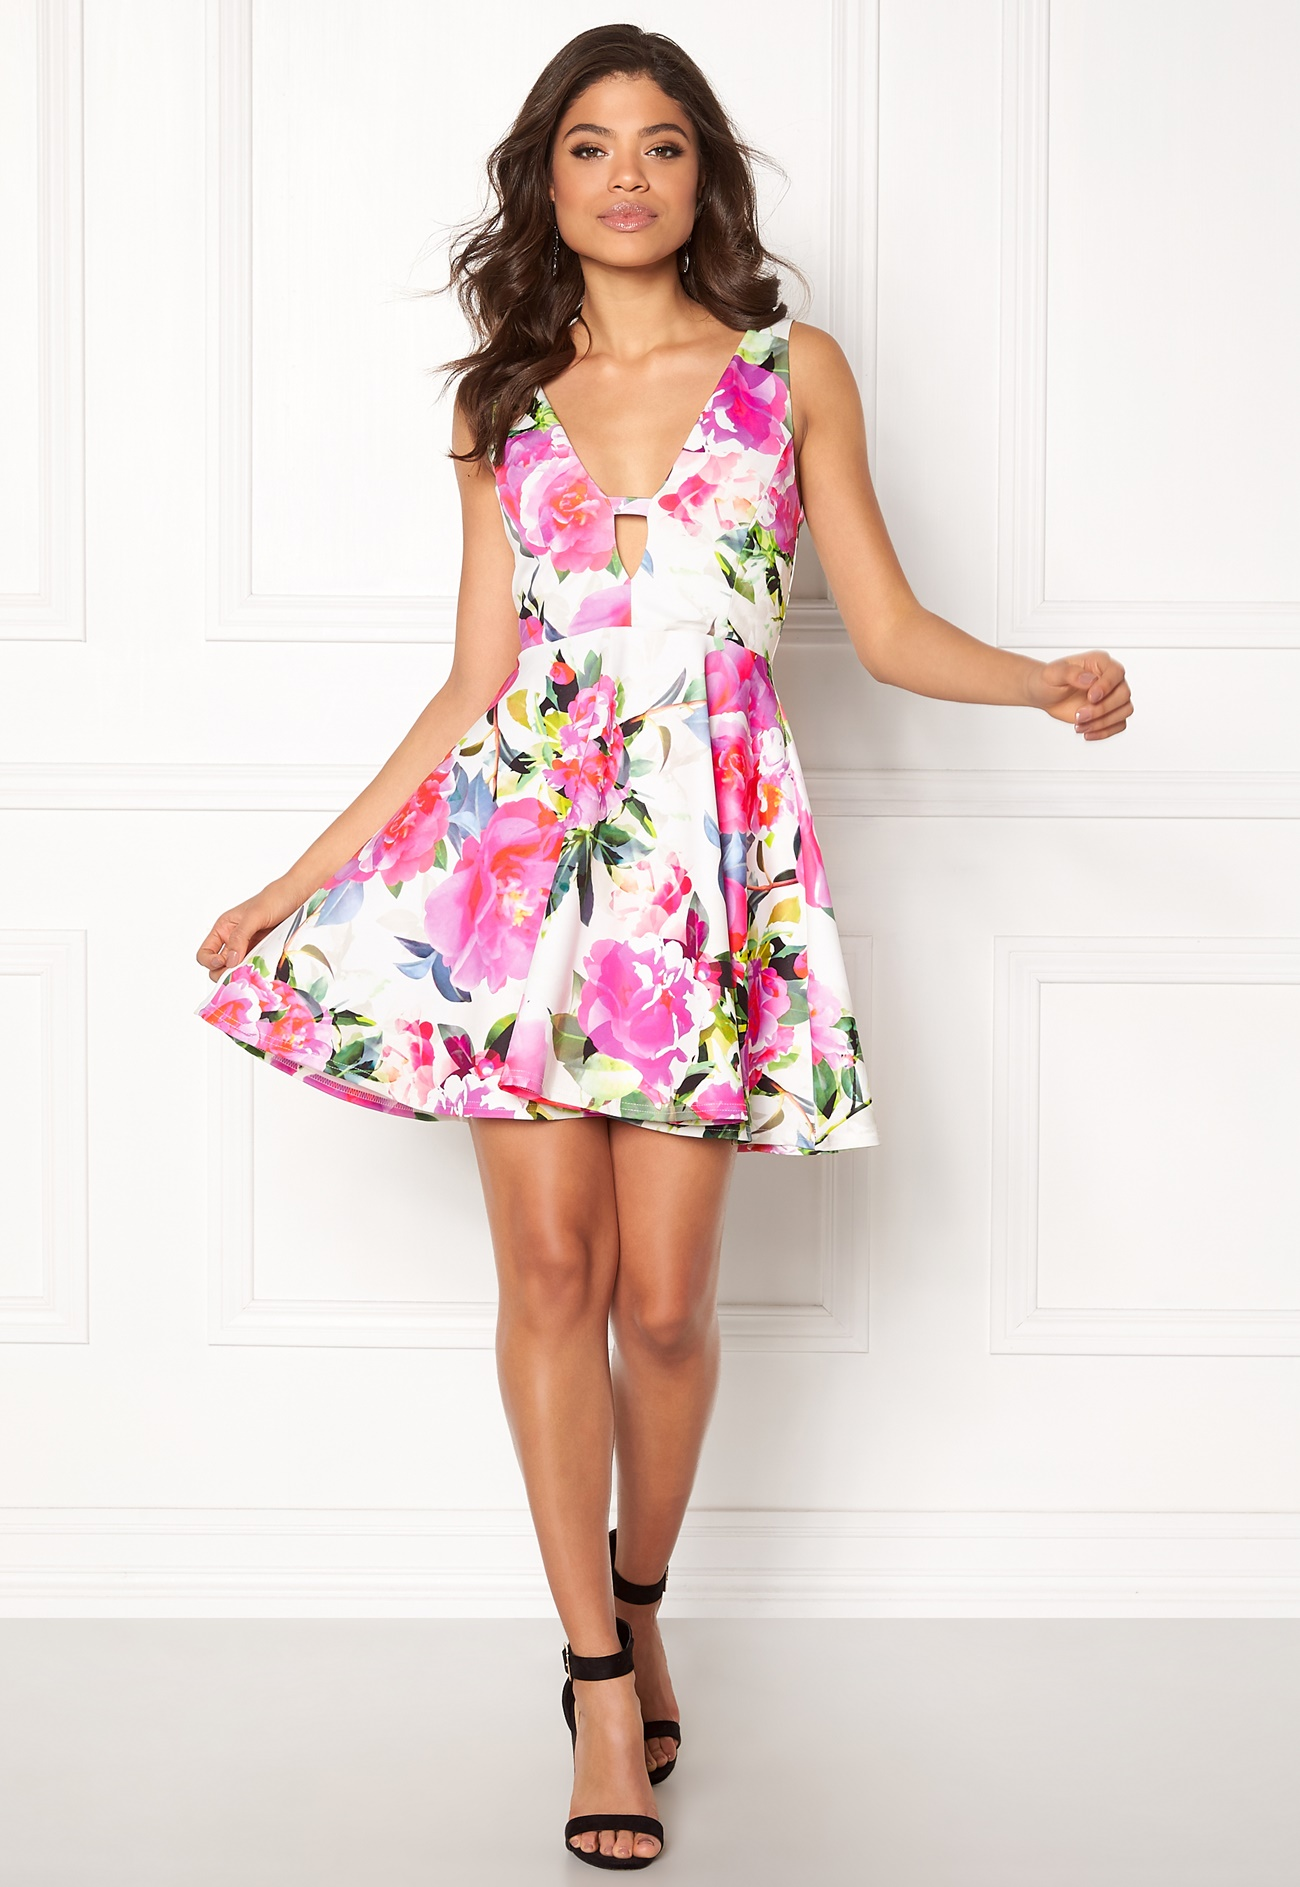 Shop from the world's largest selection and best deals for New Look Women's Dresses. Shop with confidence on eBay! Skip to main content. eBay: New Look dress. Size White with blue floral pattern. Ties up back, with adjustable straps. $ Brand: New Look. $ shipping.